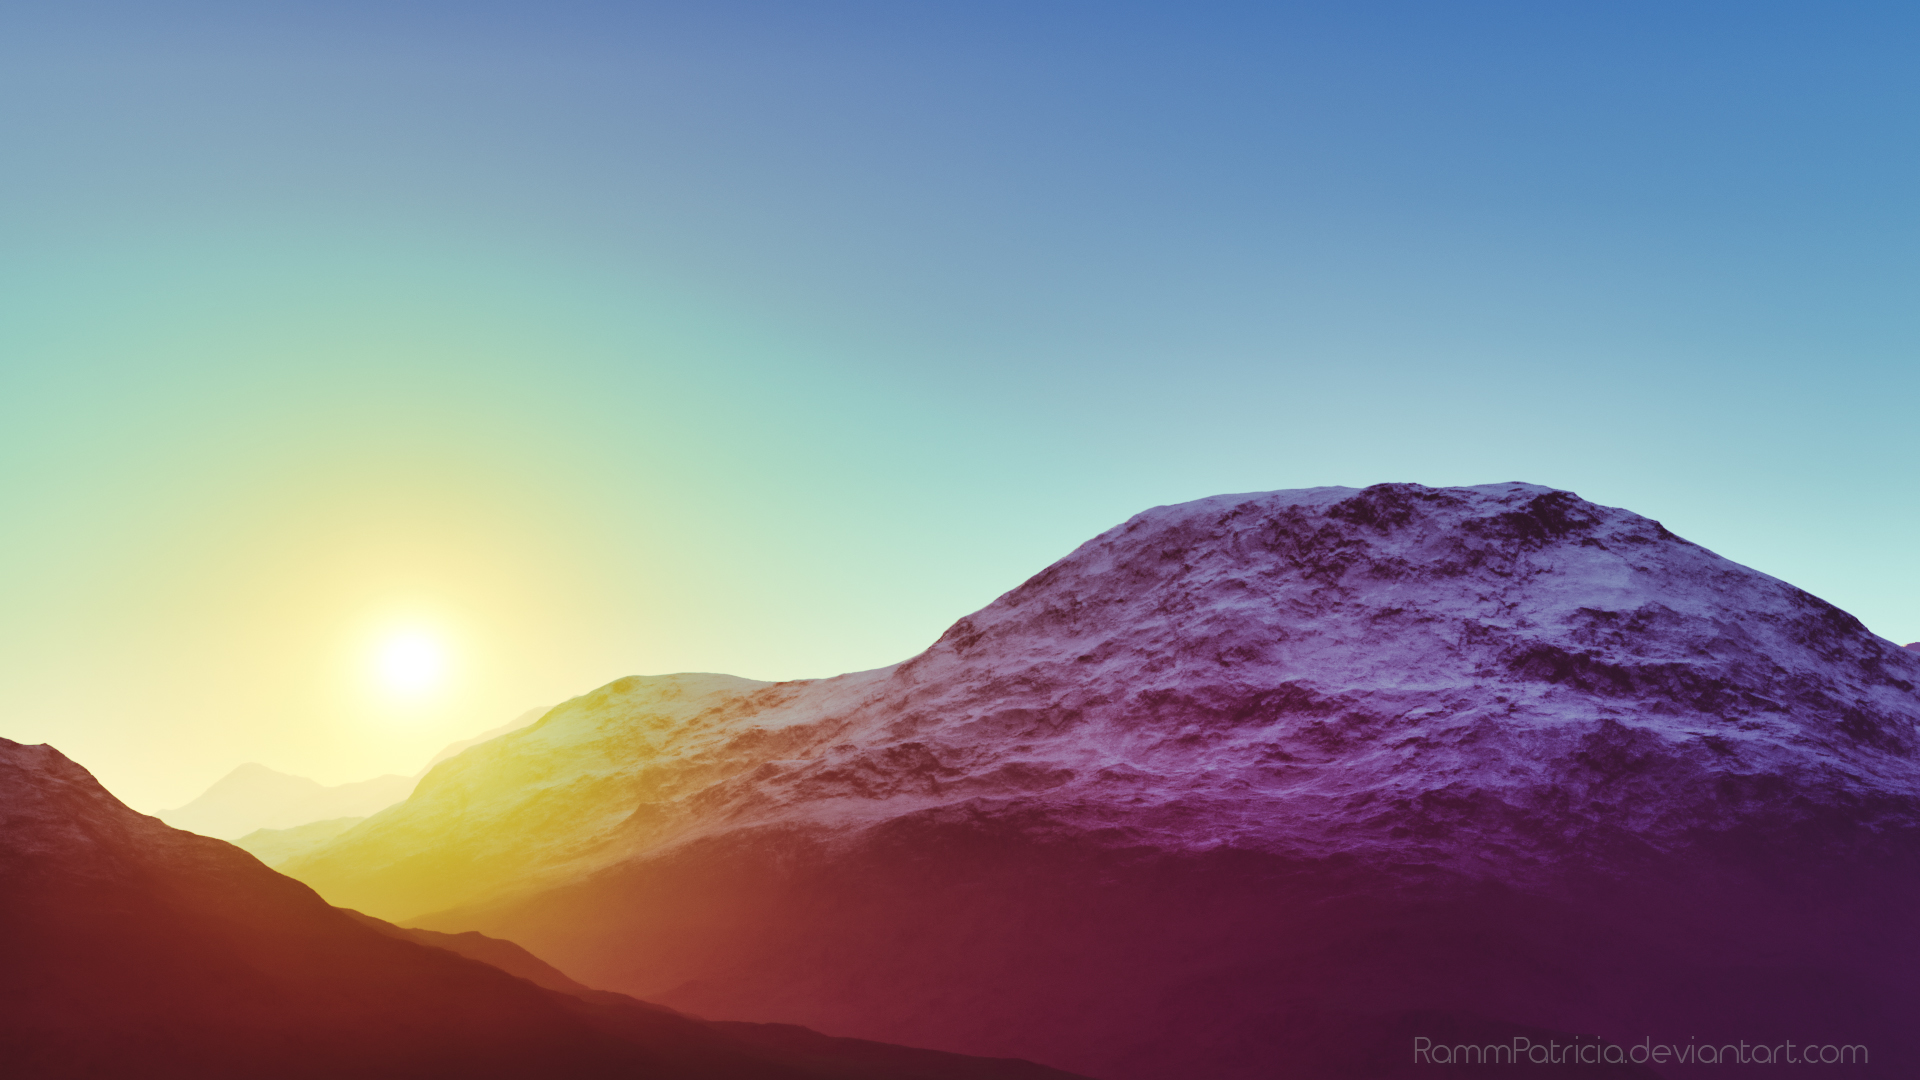 General 1920x1080 morning mountains Sun sunset snow snowy mountain